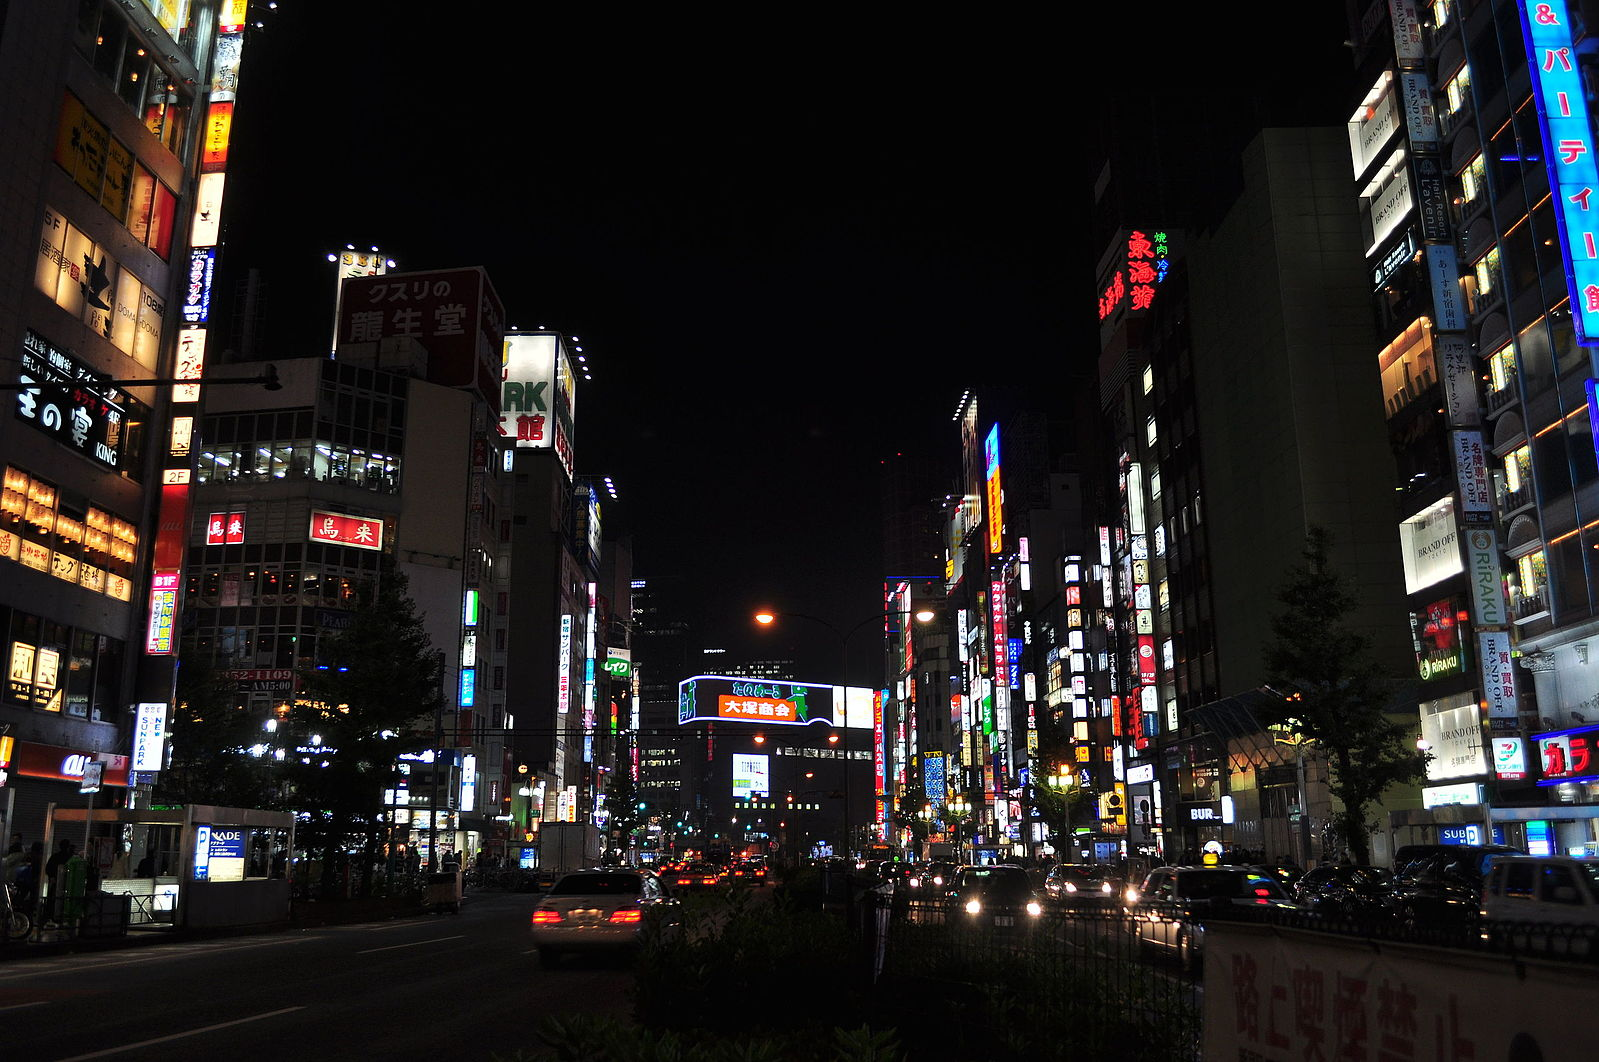 Shinjuku_Sanchome_at_night_02_-15777192701-